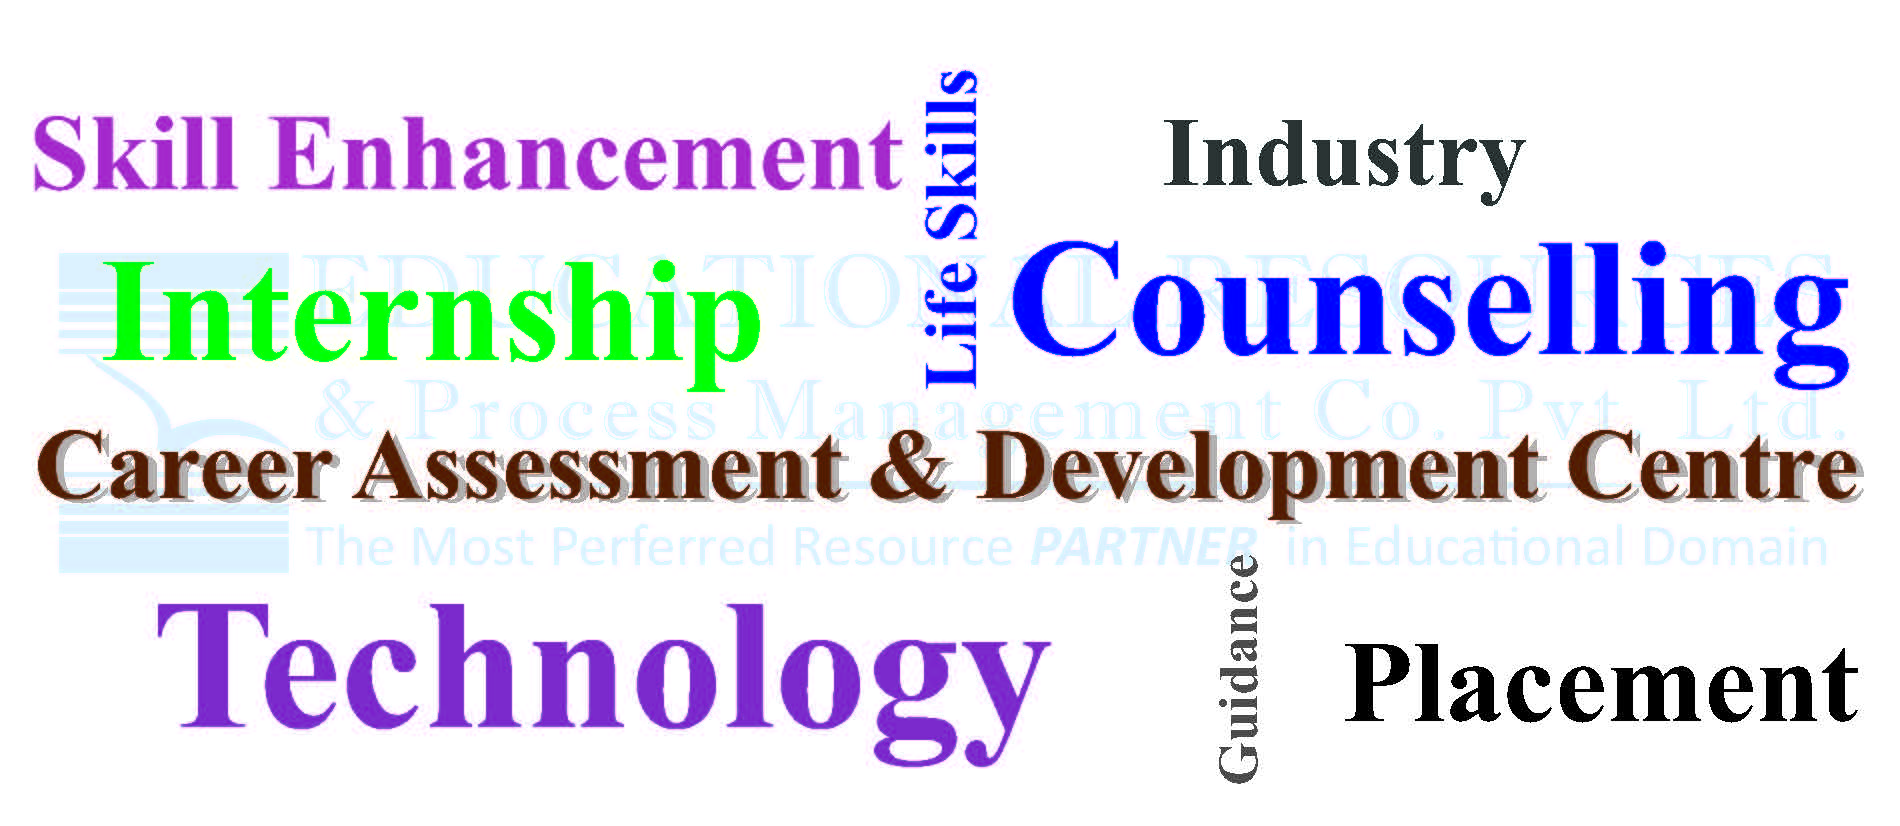 Career Development & Assessment Centre